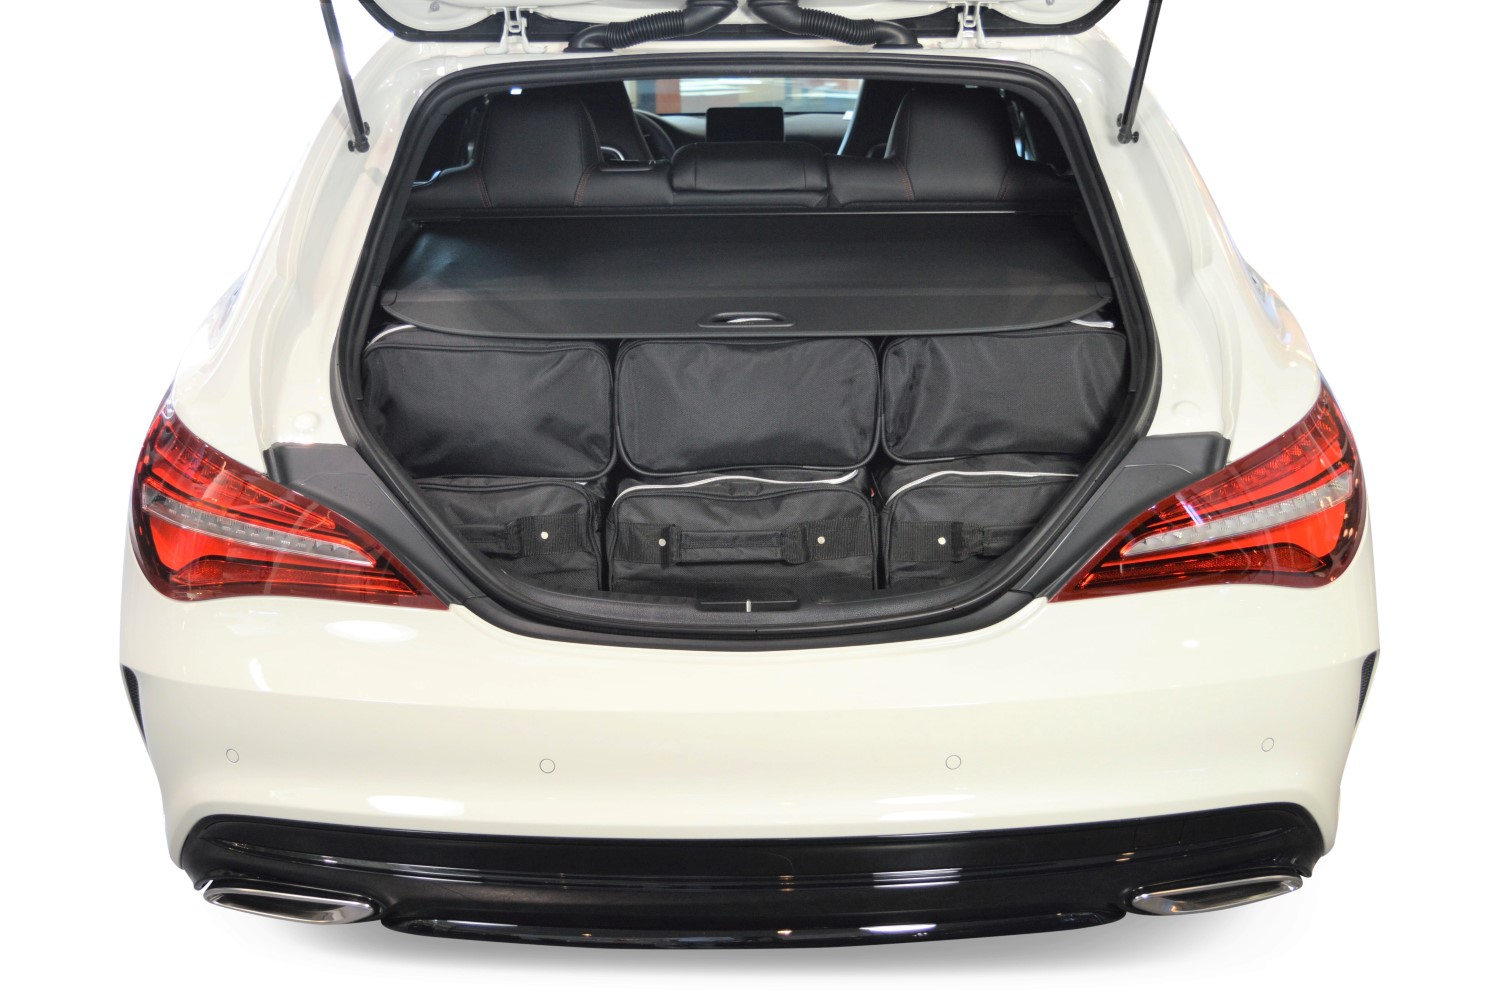 Mercedes Cla Shooting Brake X117 Autotaschen Nach Mass Car Bags Com